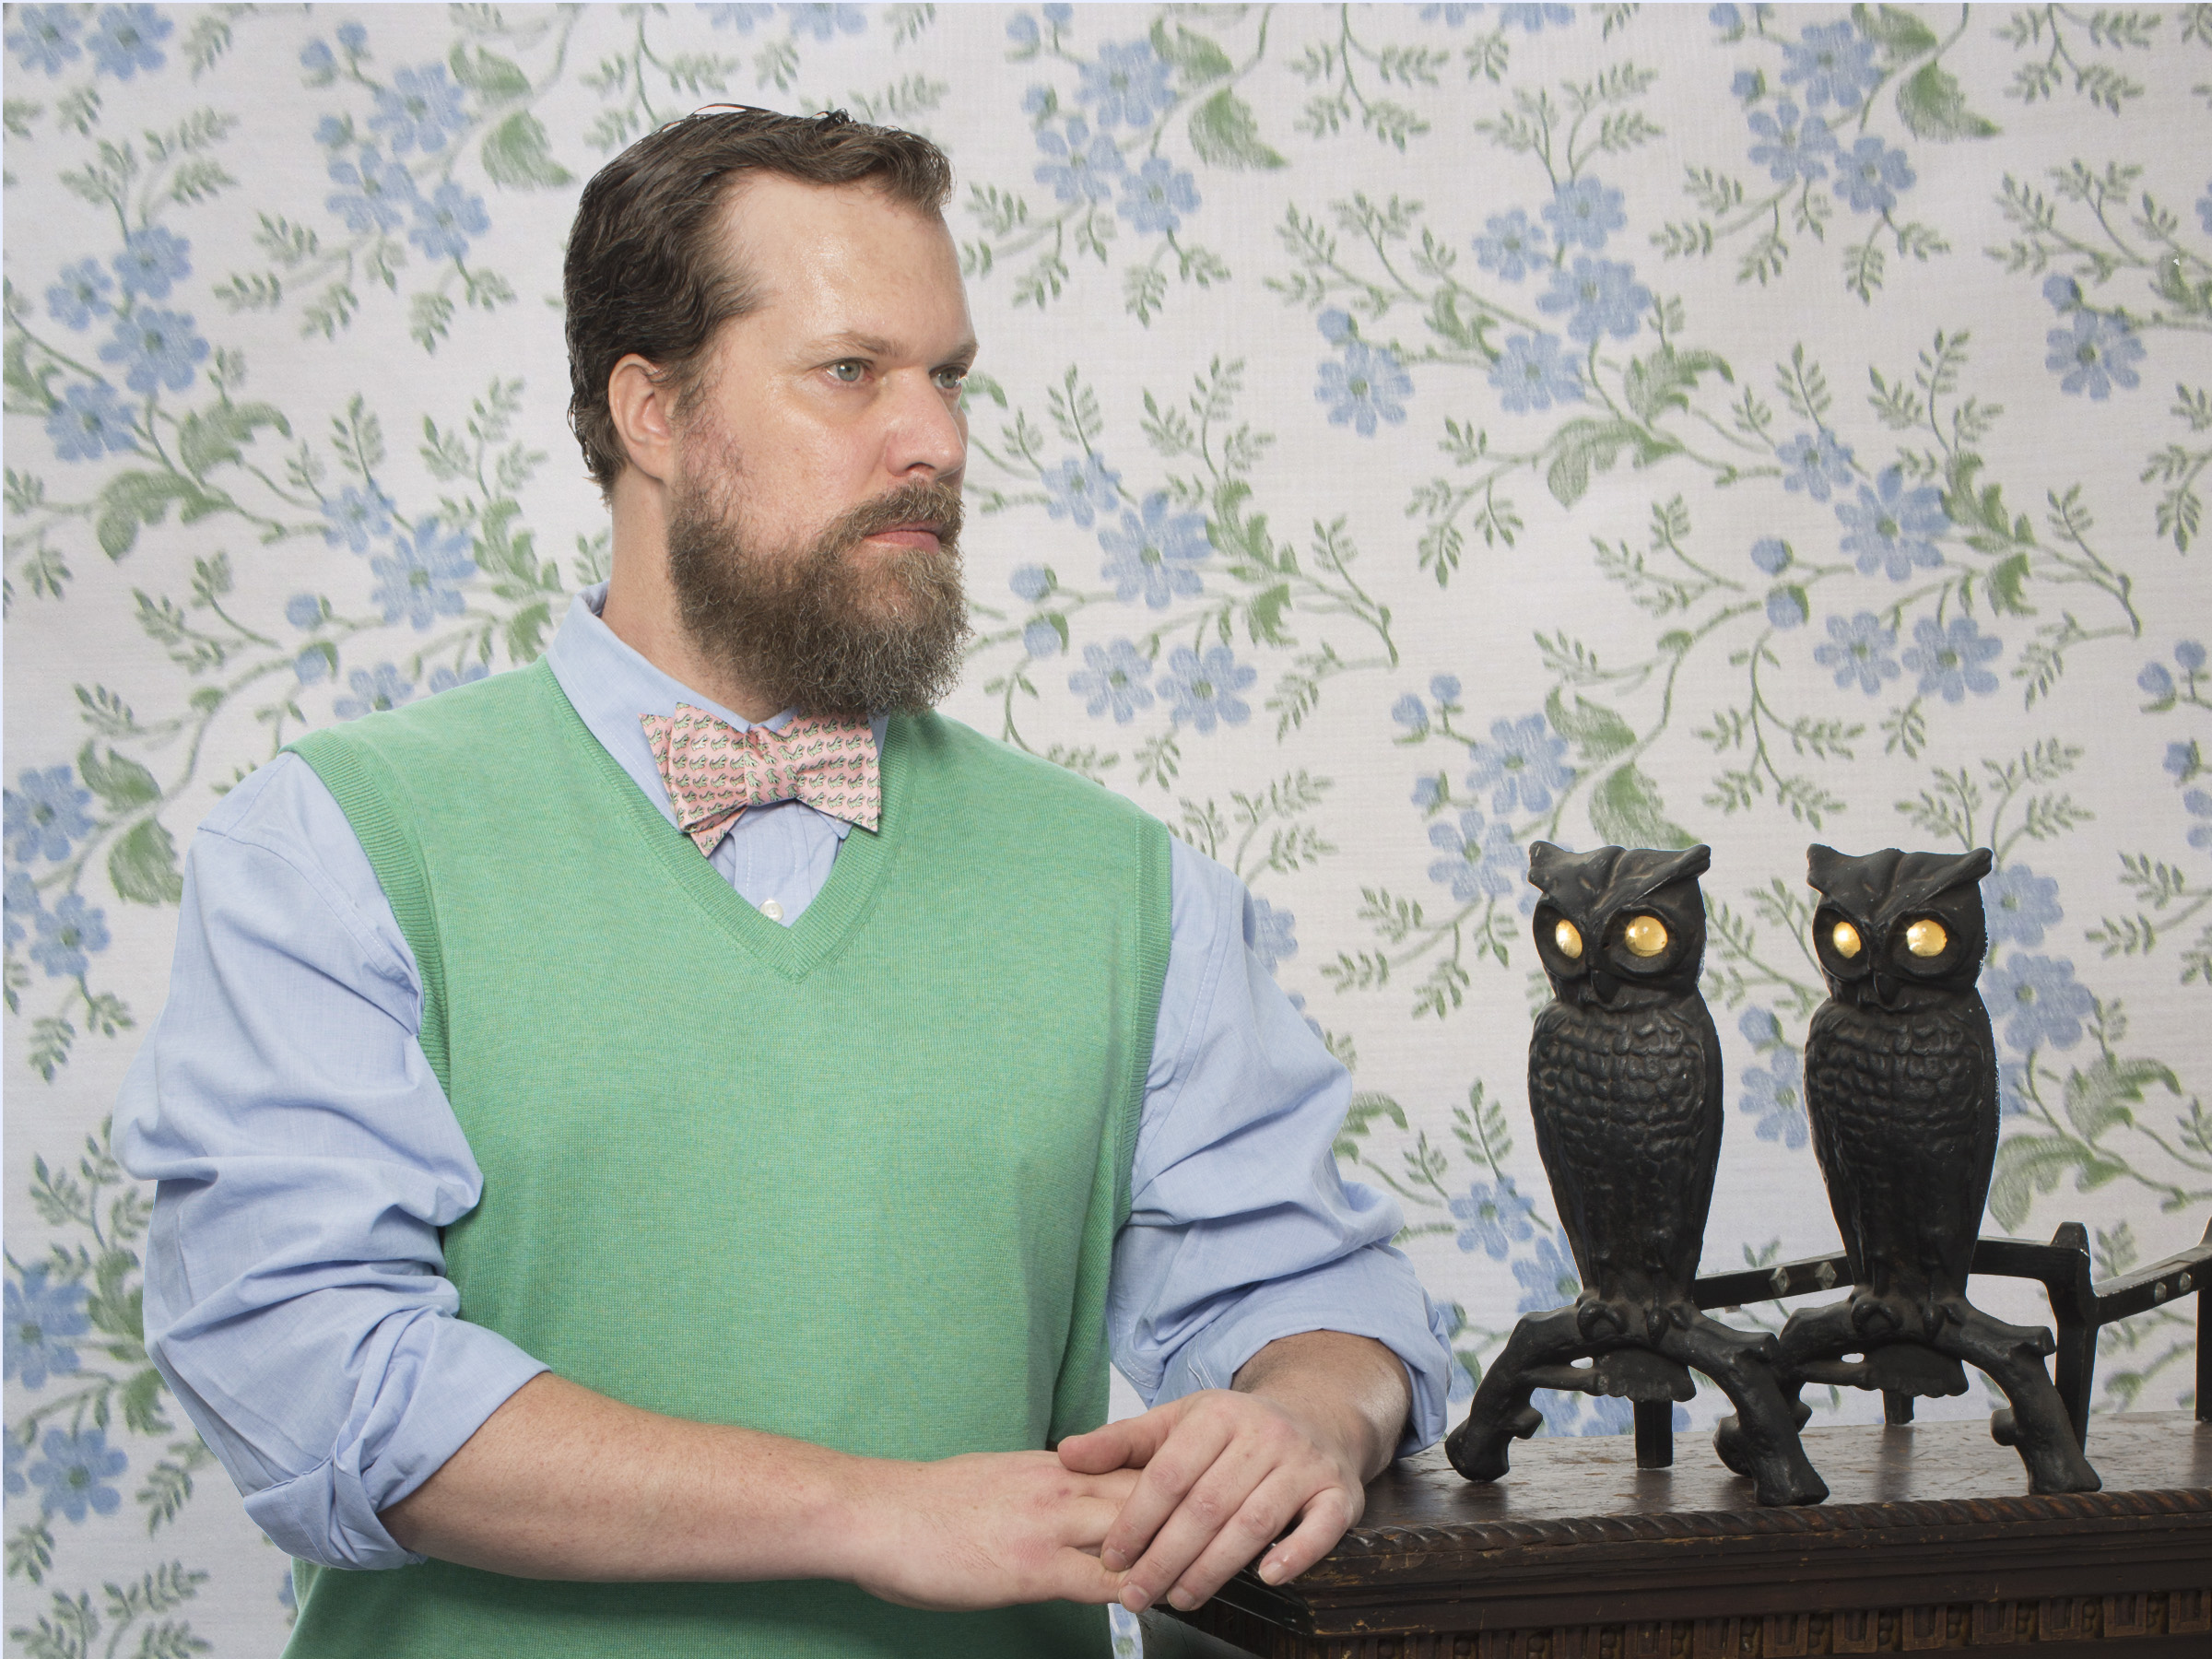 _images_uploads_gallery_John_Grant_owl_by_Michael_Berman.jpg